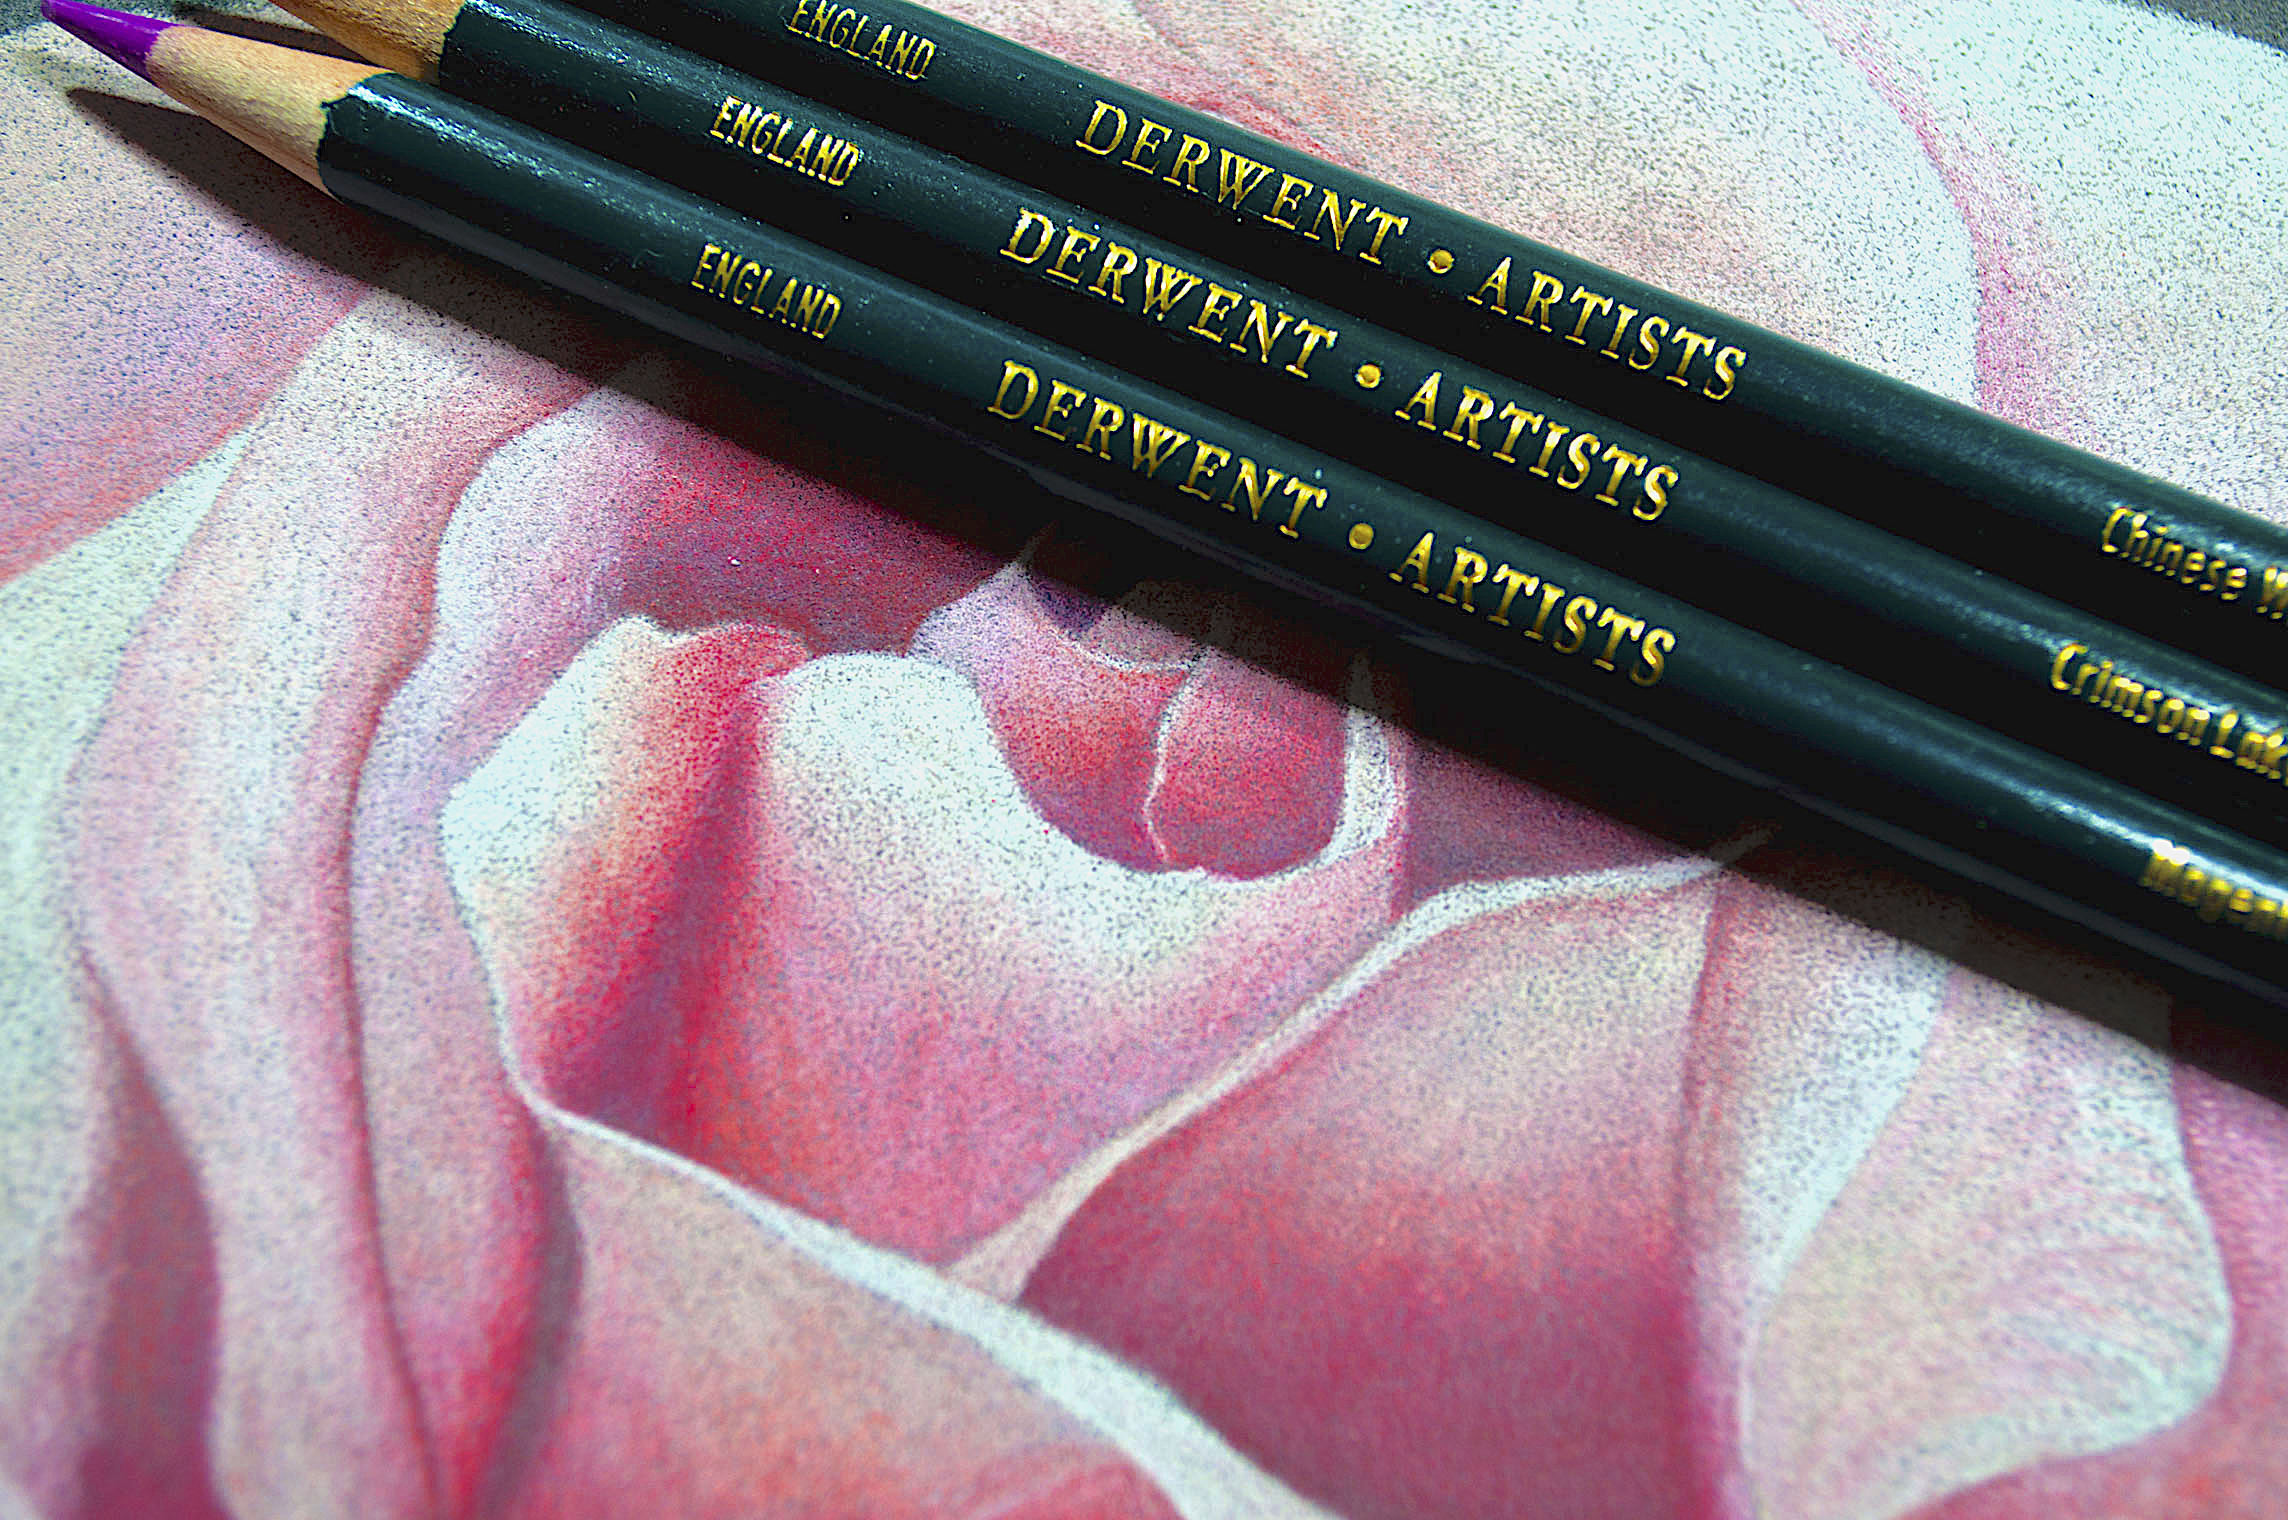 Derwent Artist Rose With Pencils.jpg